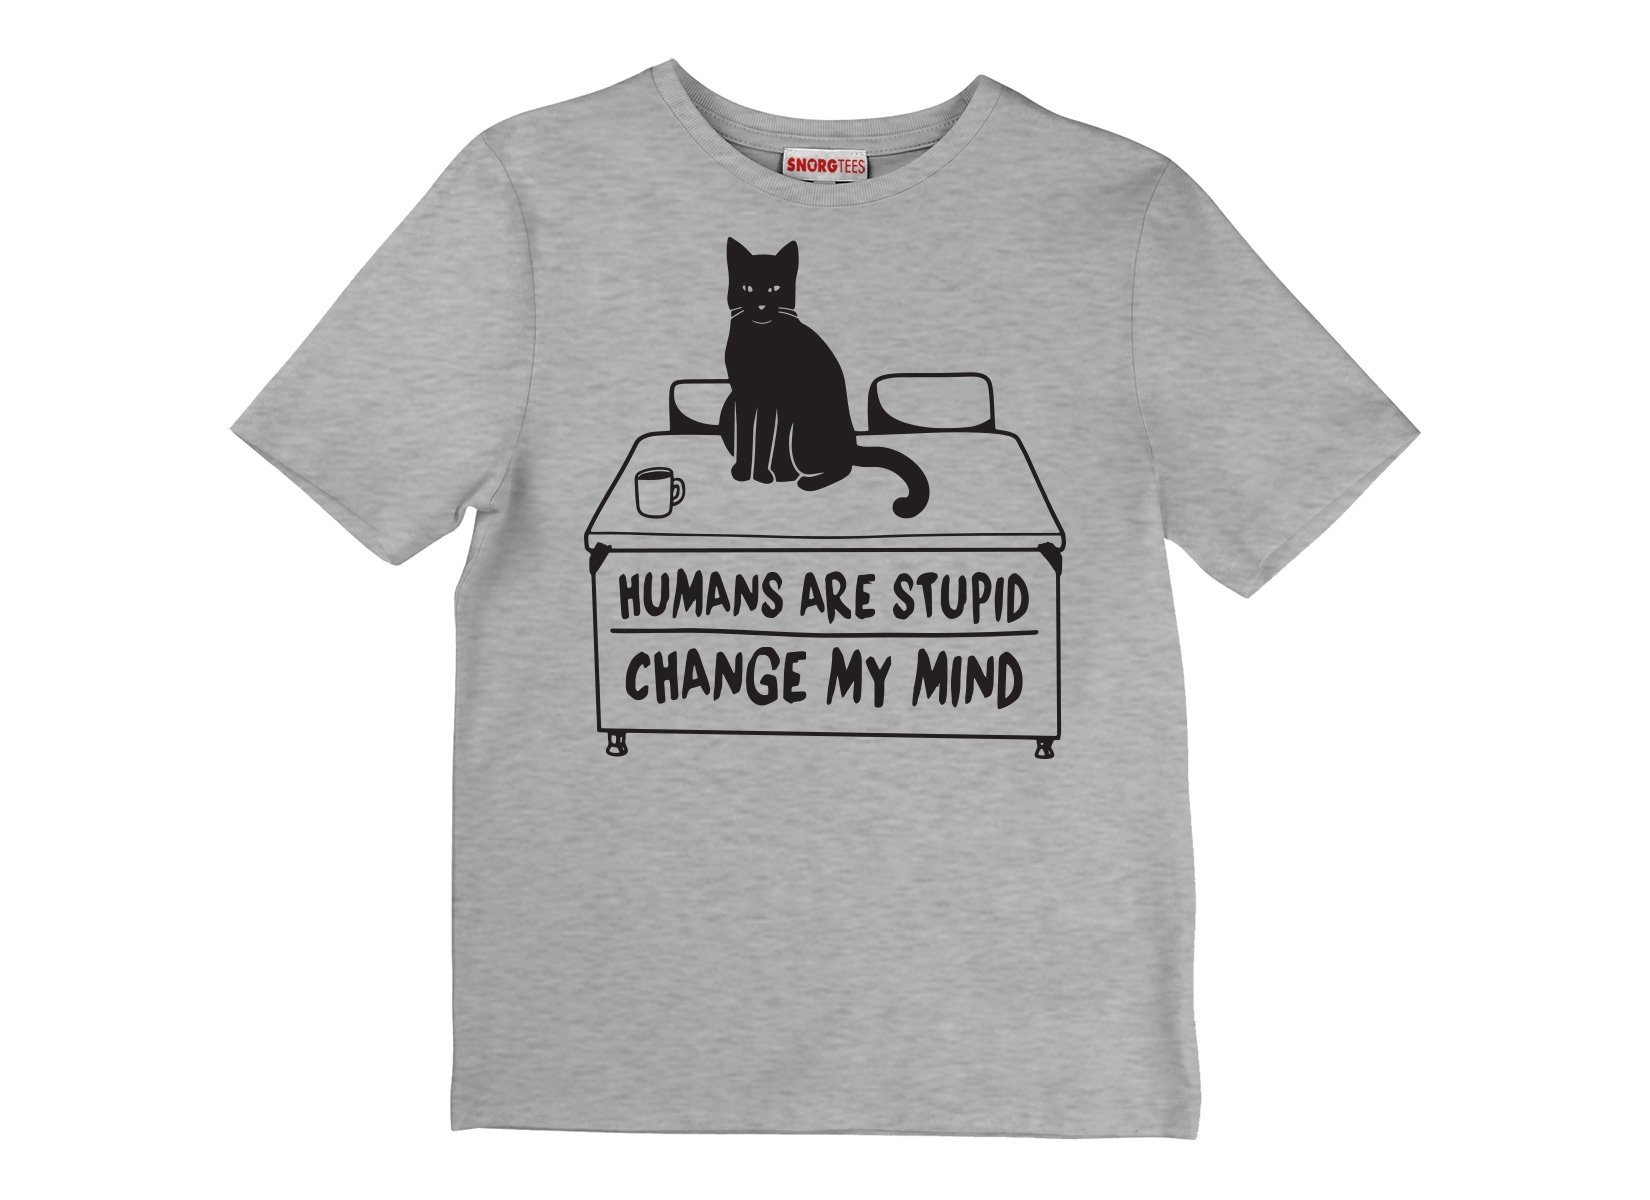 Humans Are Stupid on Kids T-Shirt